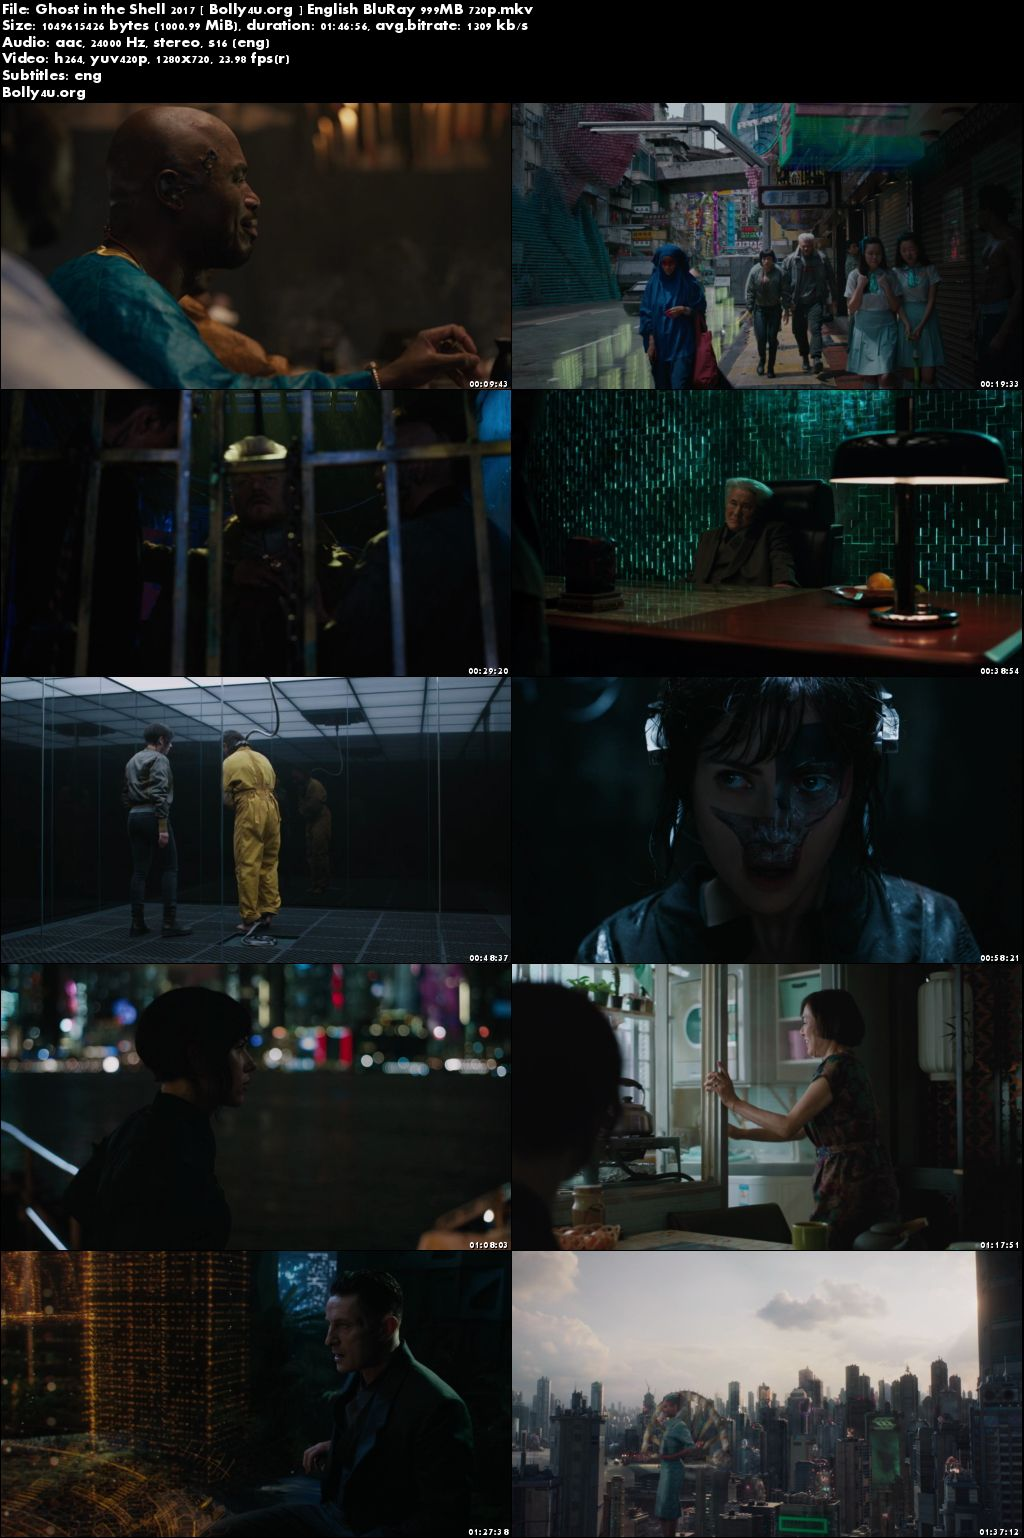 Ghost in the Shell 2017 BRRip 999MB English 720p ESubs Download